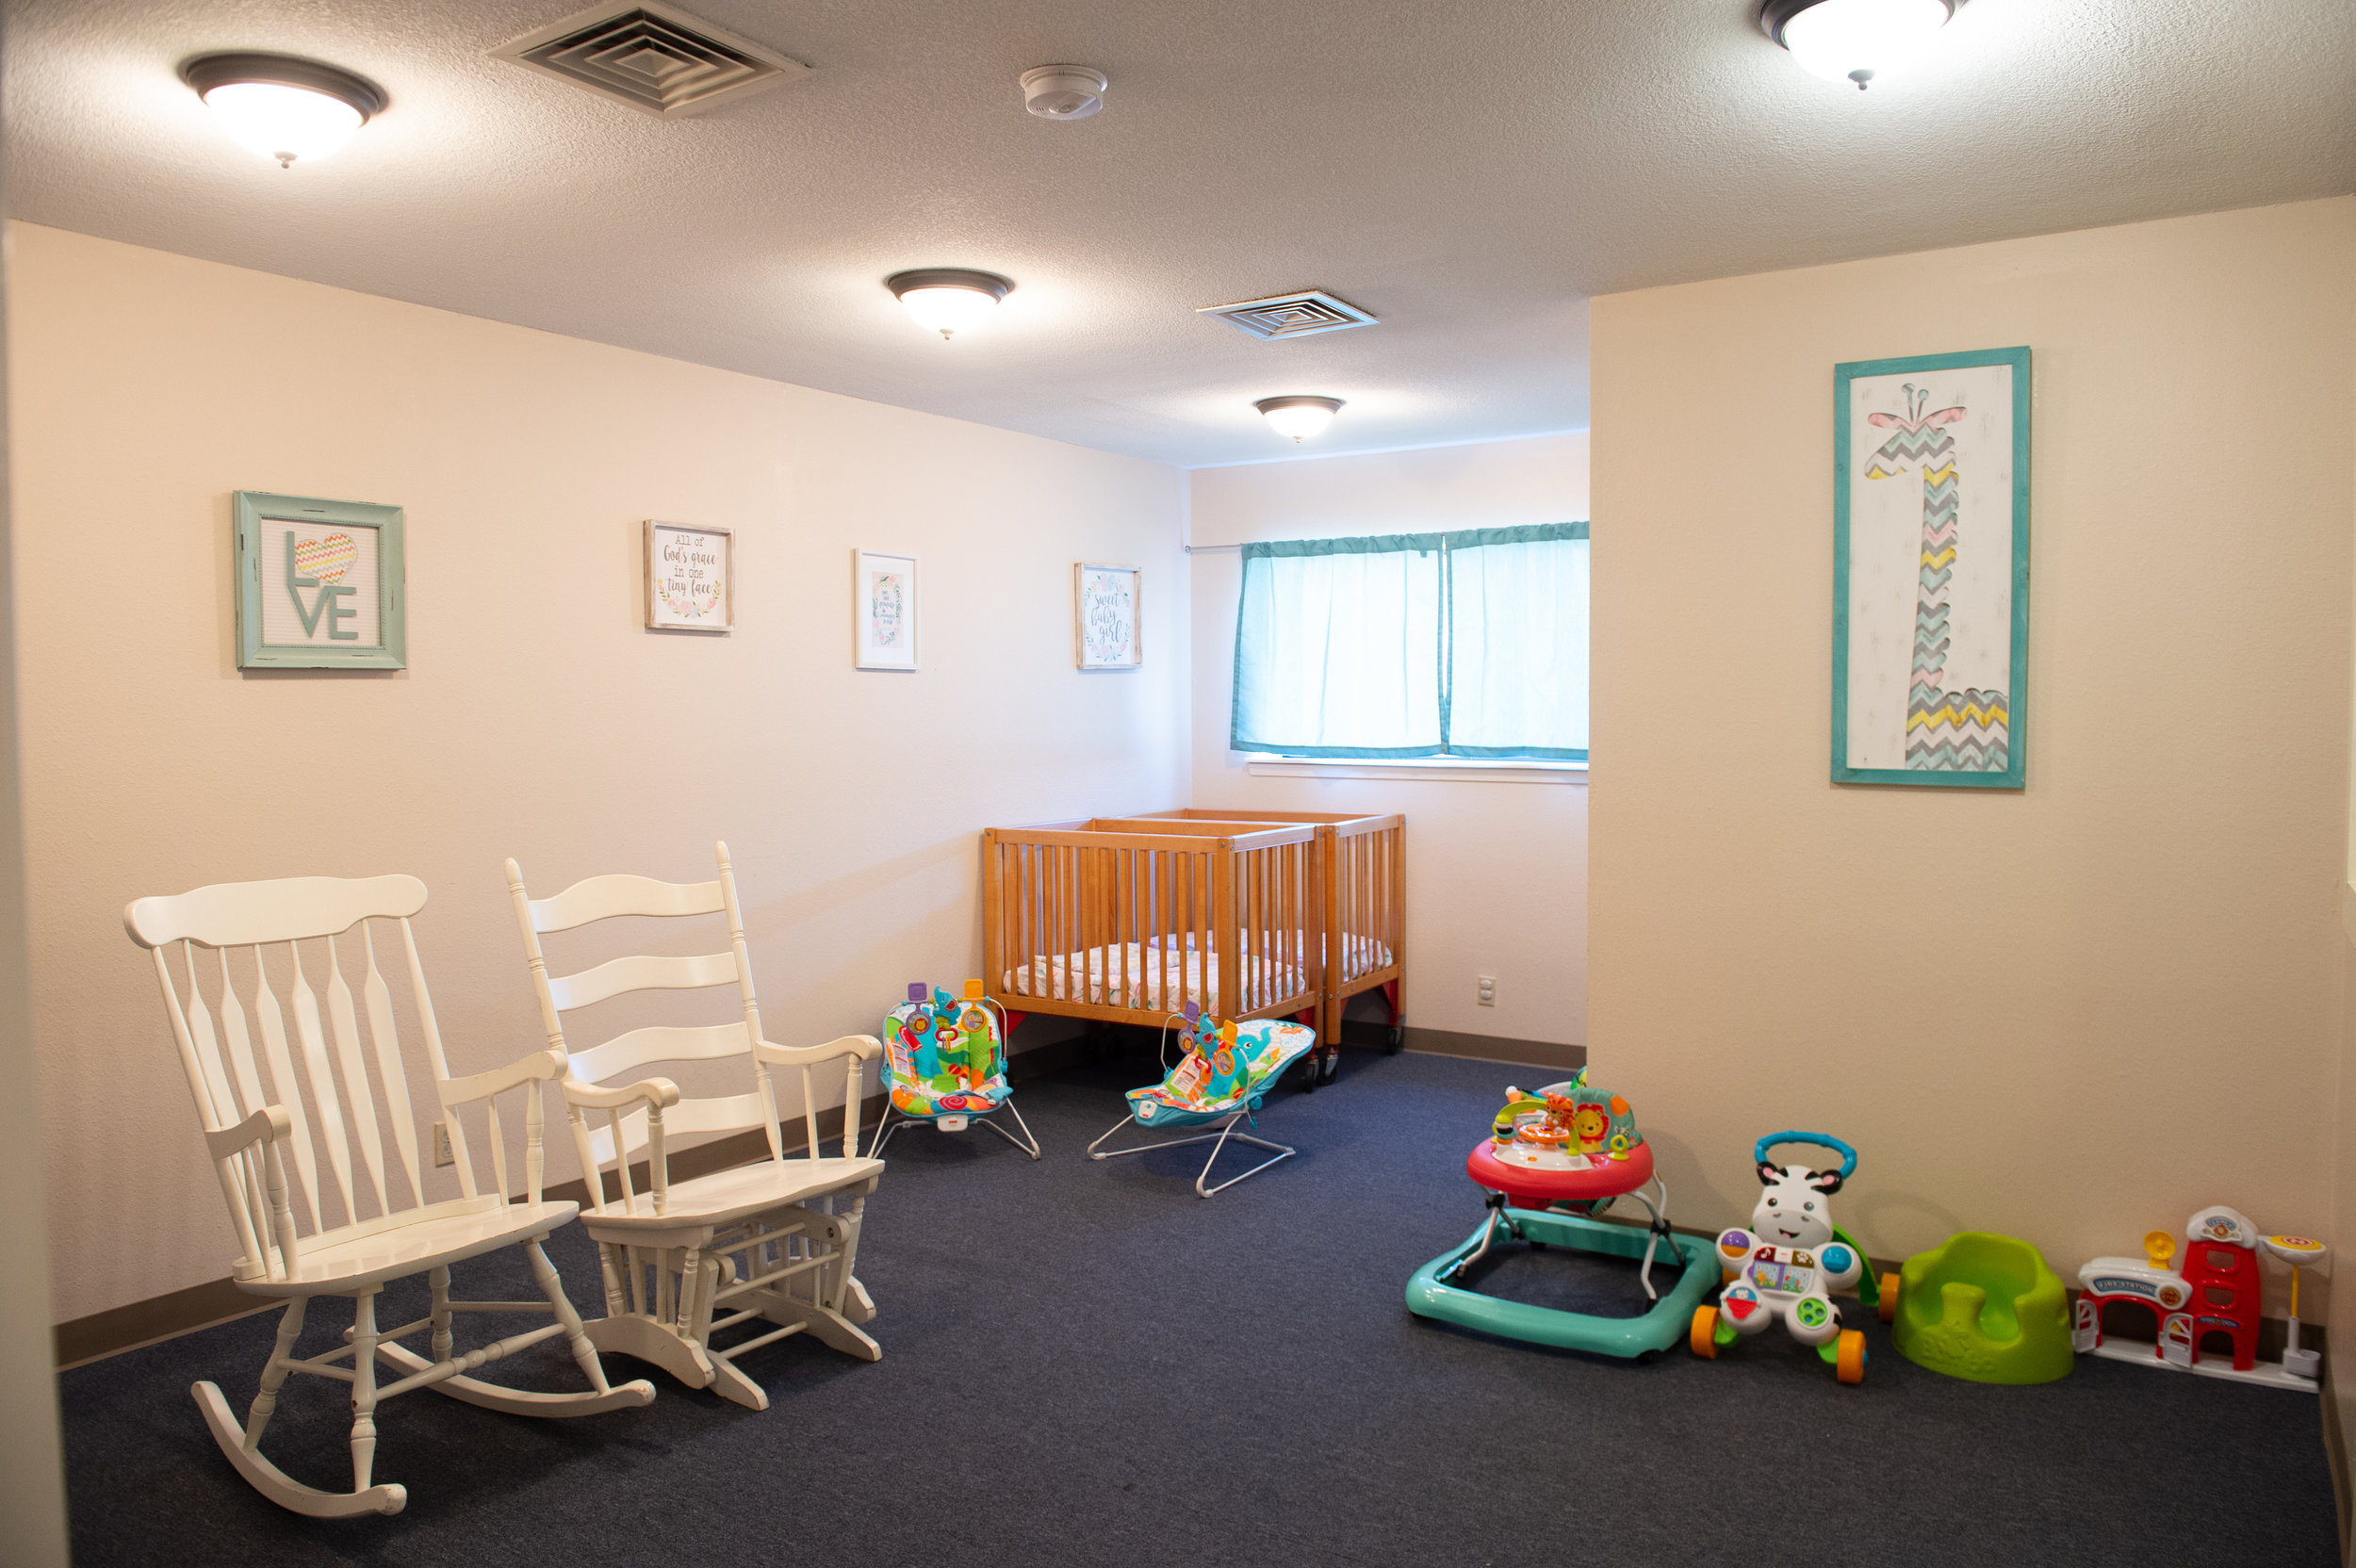 Our Infant Nursery - New Born to One Year Old